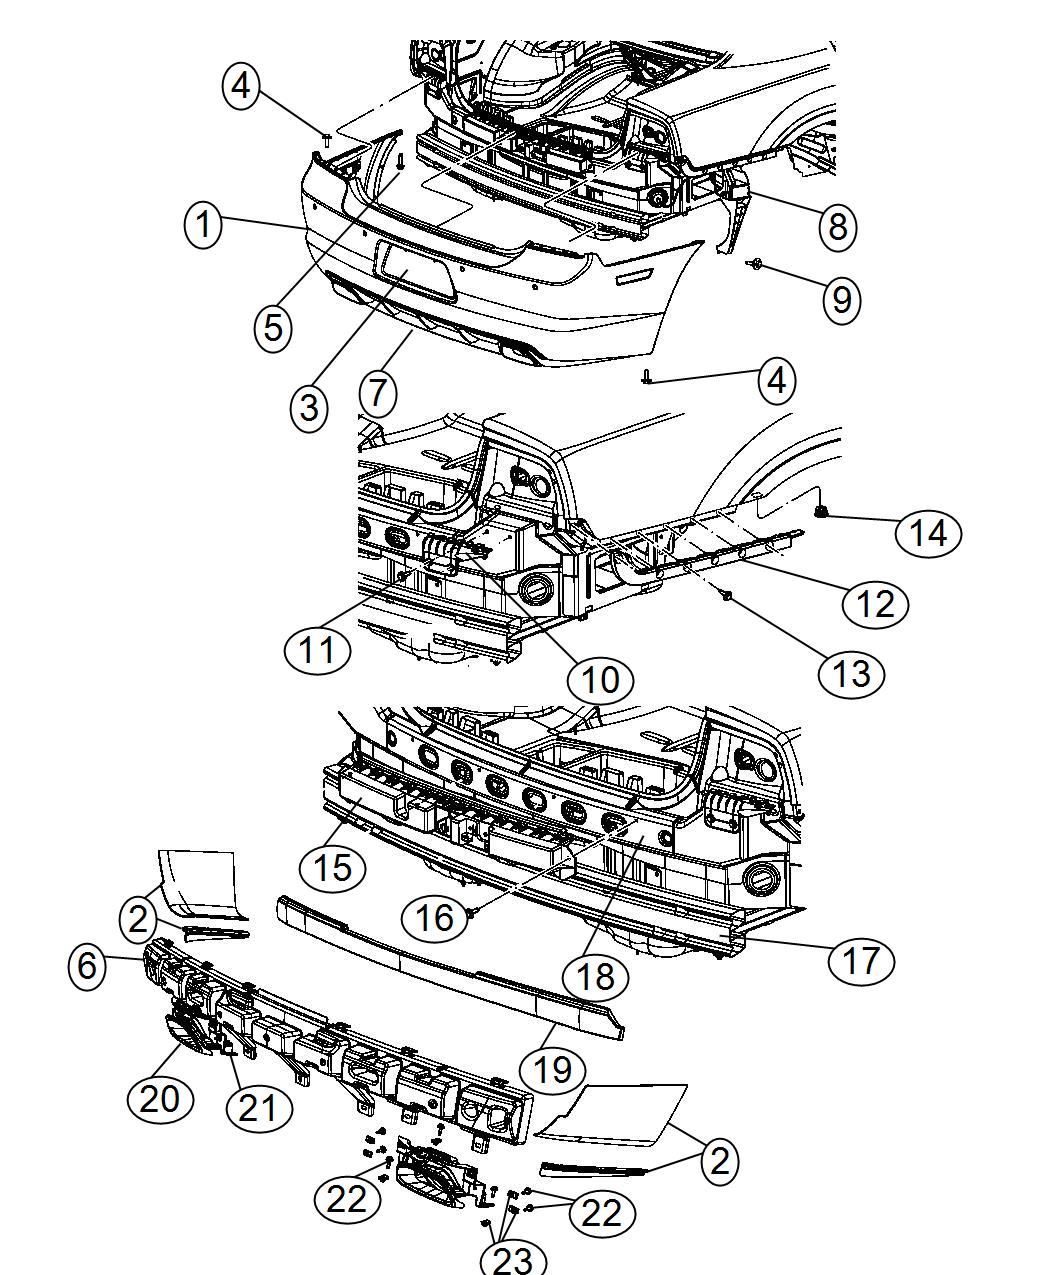 2014 dodge charger bumper diagram